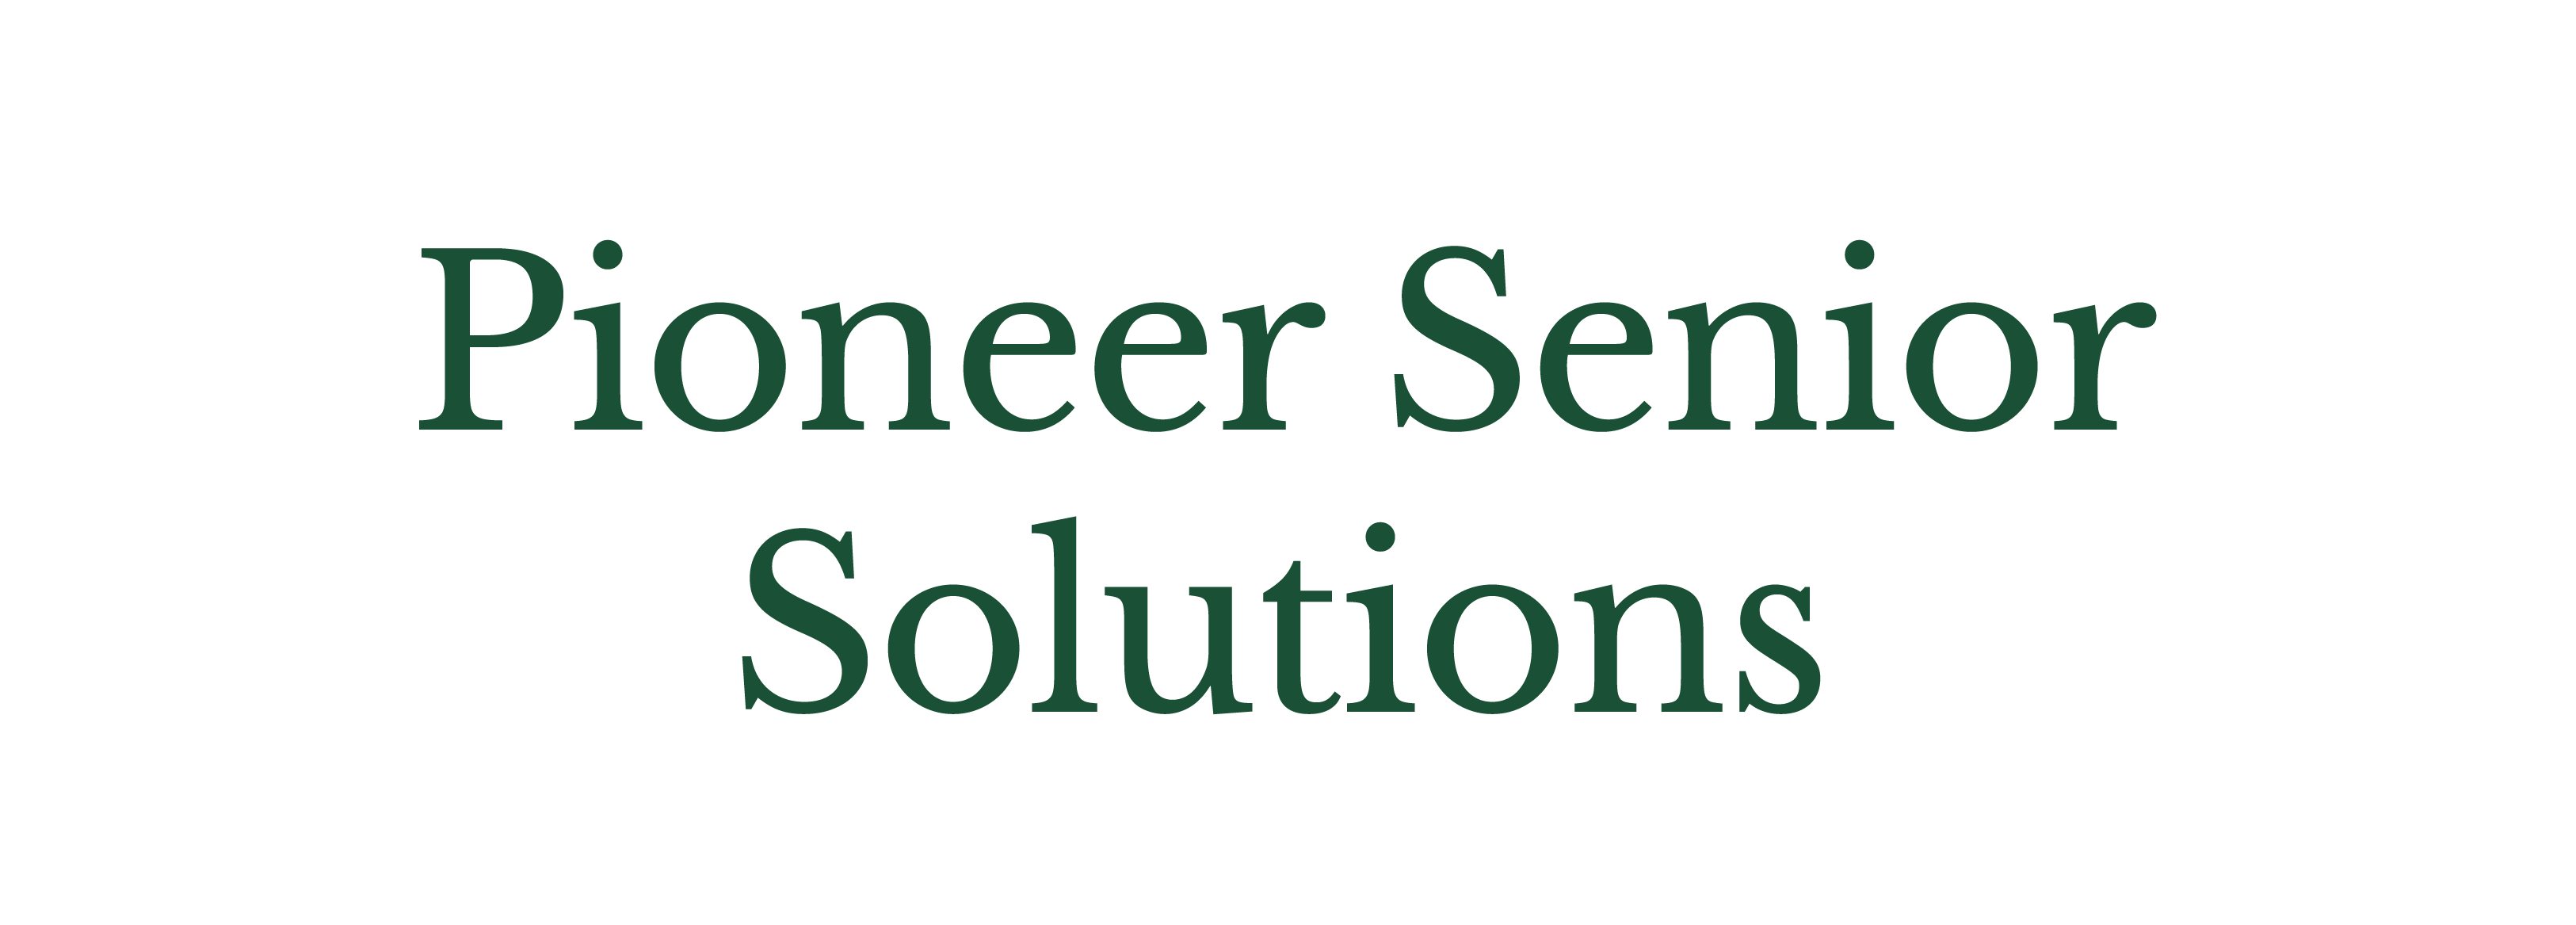 Pioneer Senior Solutions_Logo - Name Only